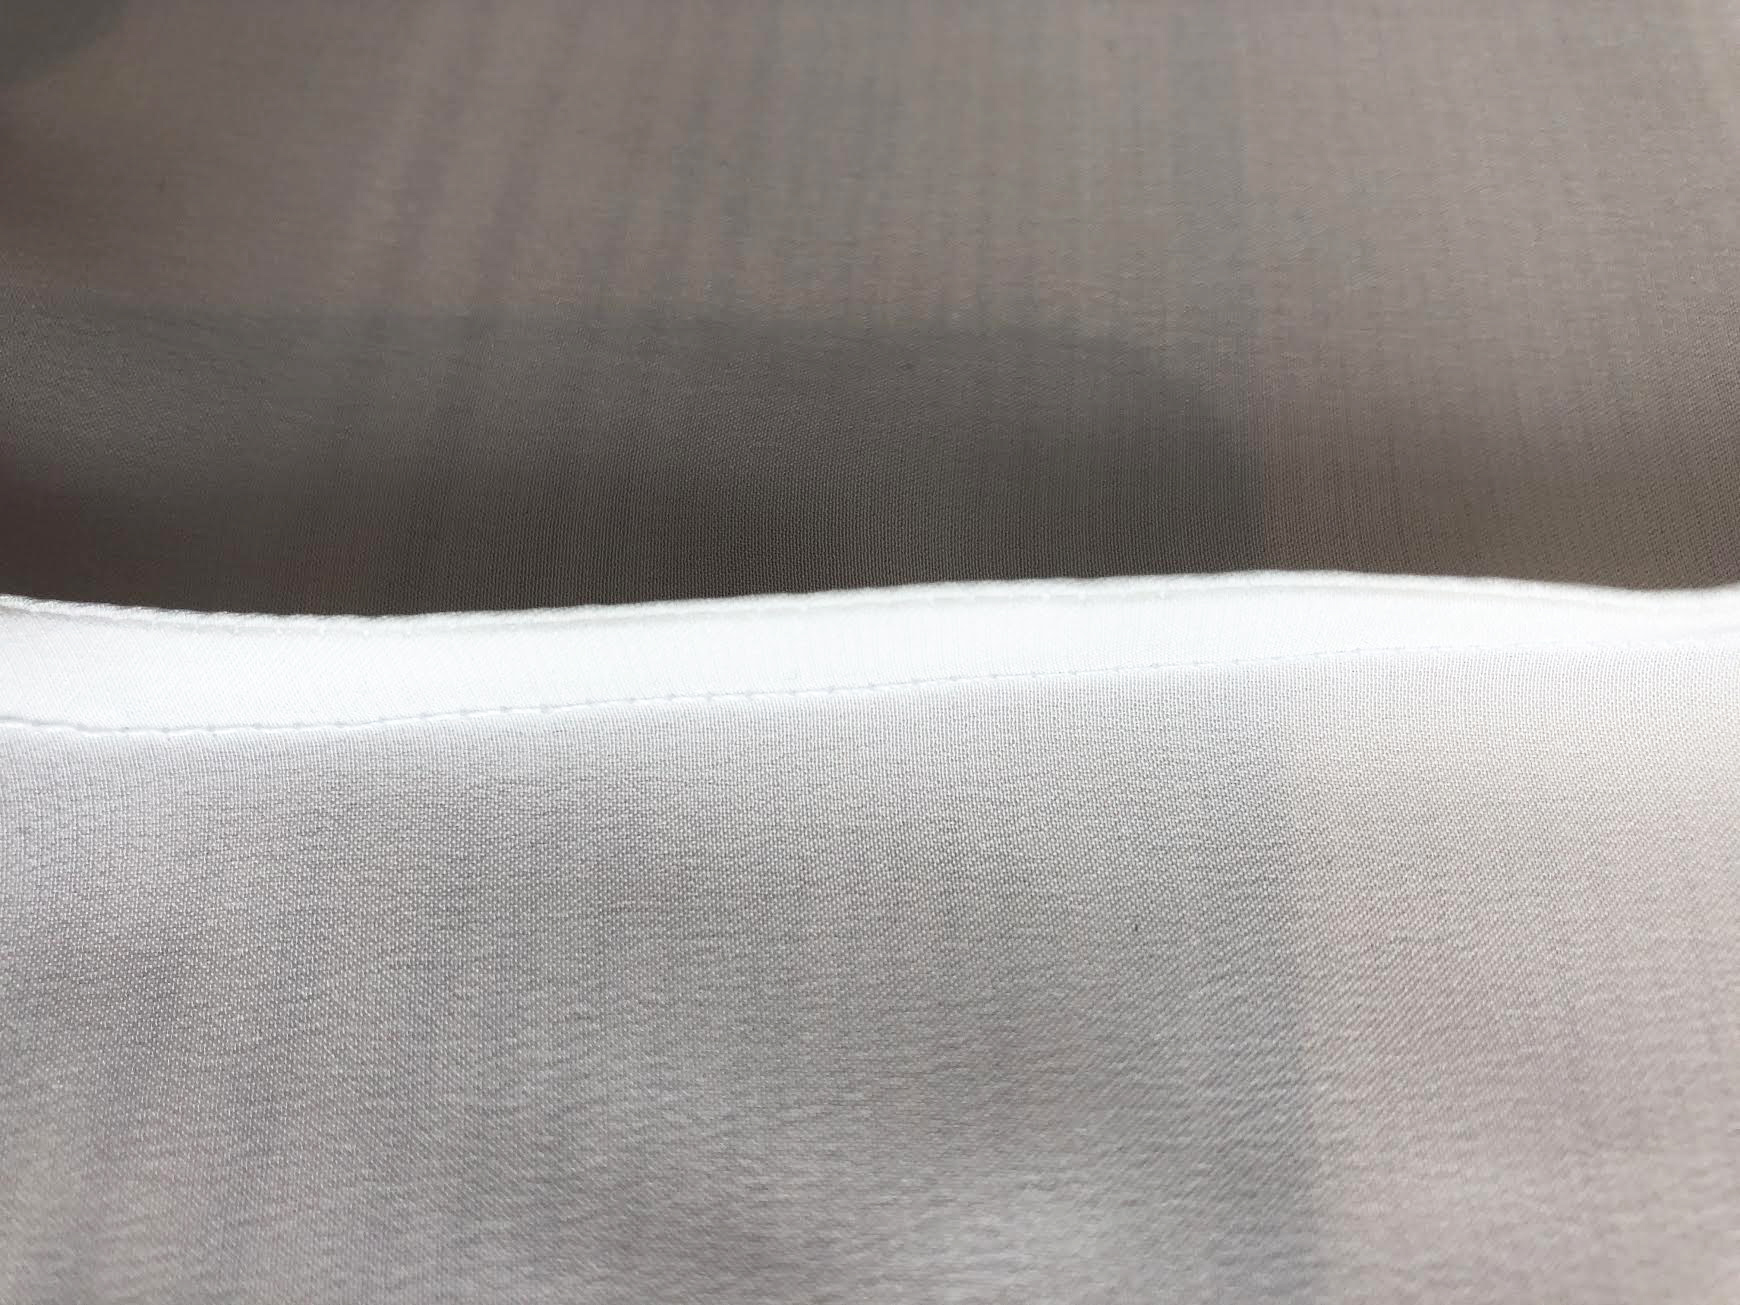 French Seam - Unlike a standard seam, a French seam involves sewing the wrong sides together to achieve a double seam. As pictured to the right.